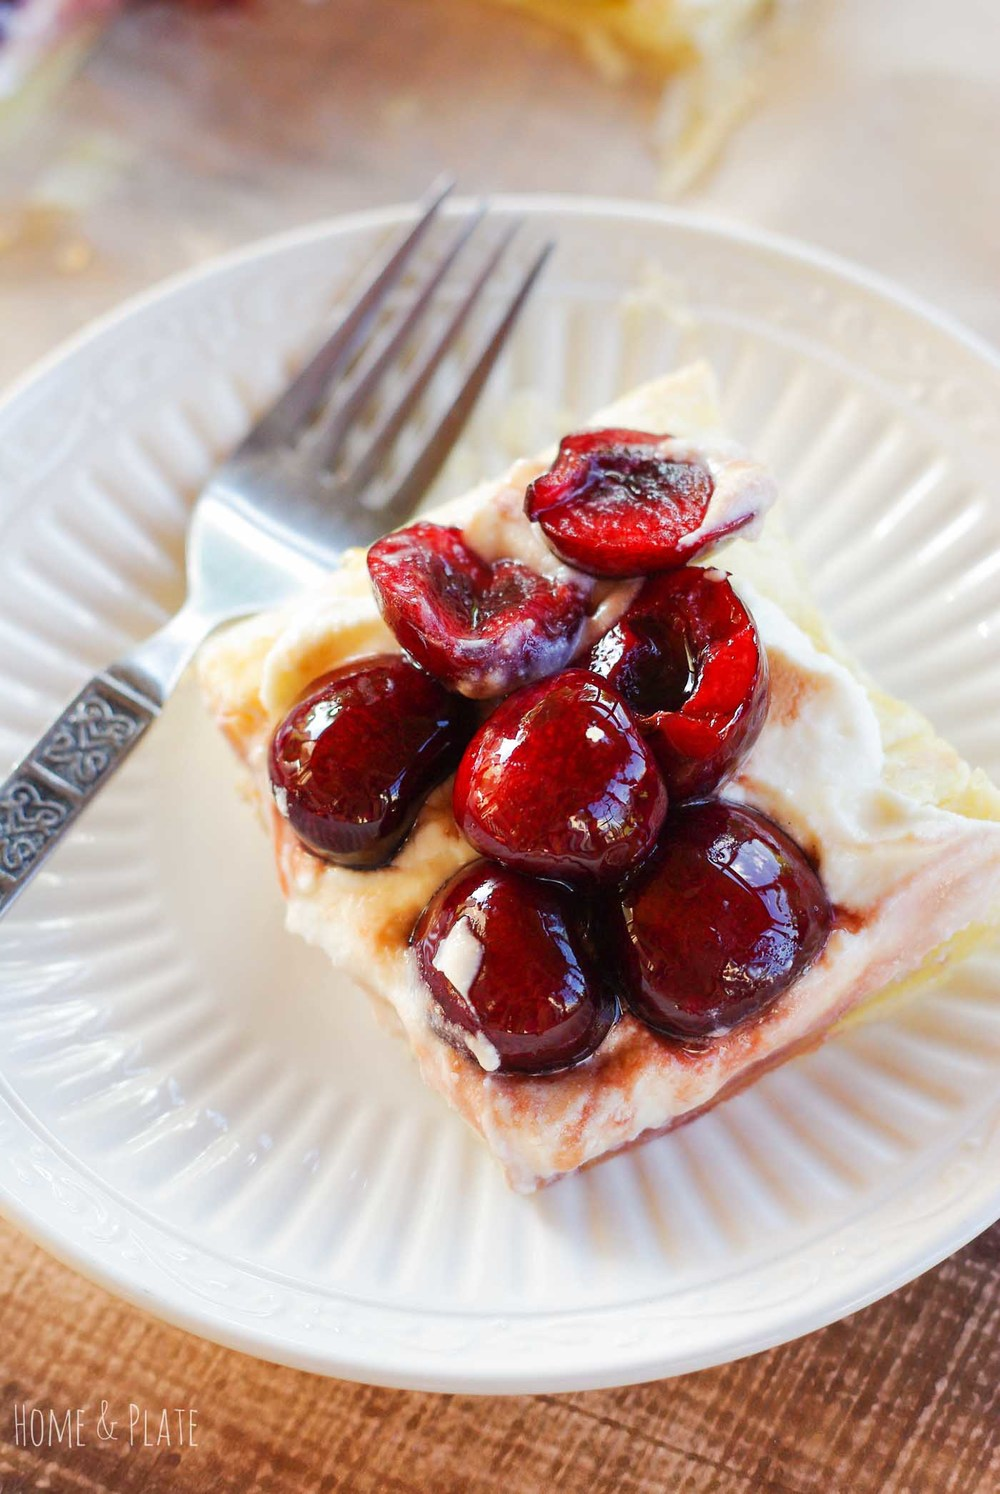 Cherry & Honey Ricotta Tart | www.homeandplate.com | Summer is the season for sweet cherries. My cherry and honey ricotta tart is the perfect dessert that is easy to make and delicious.